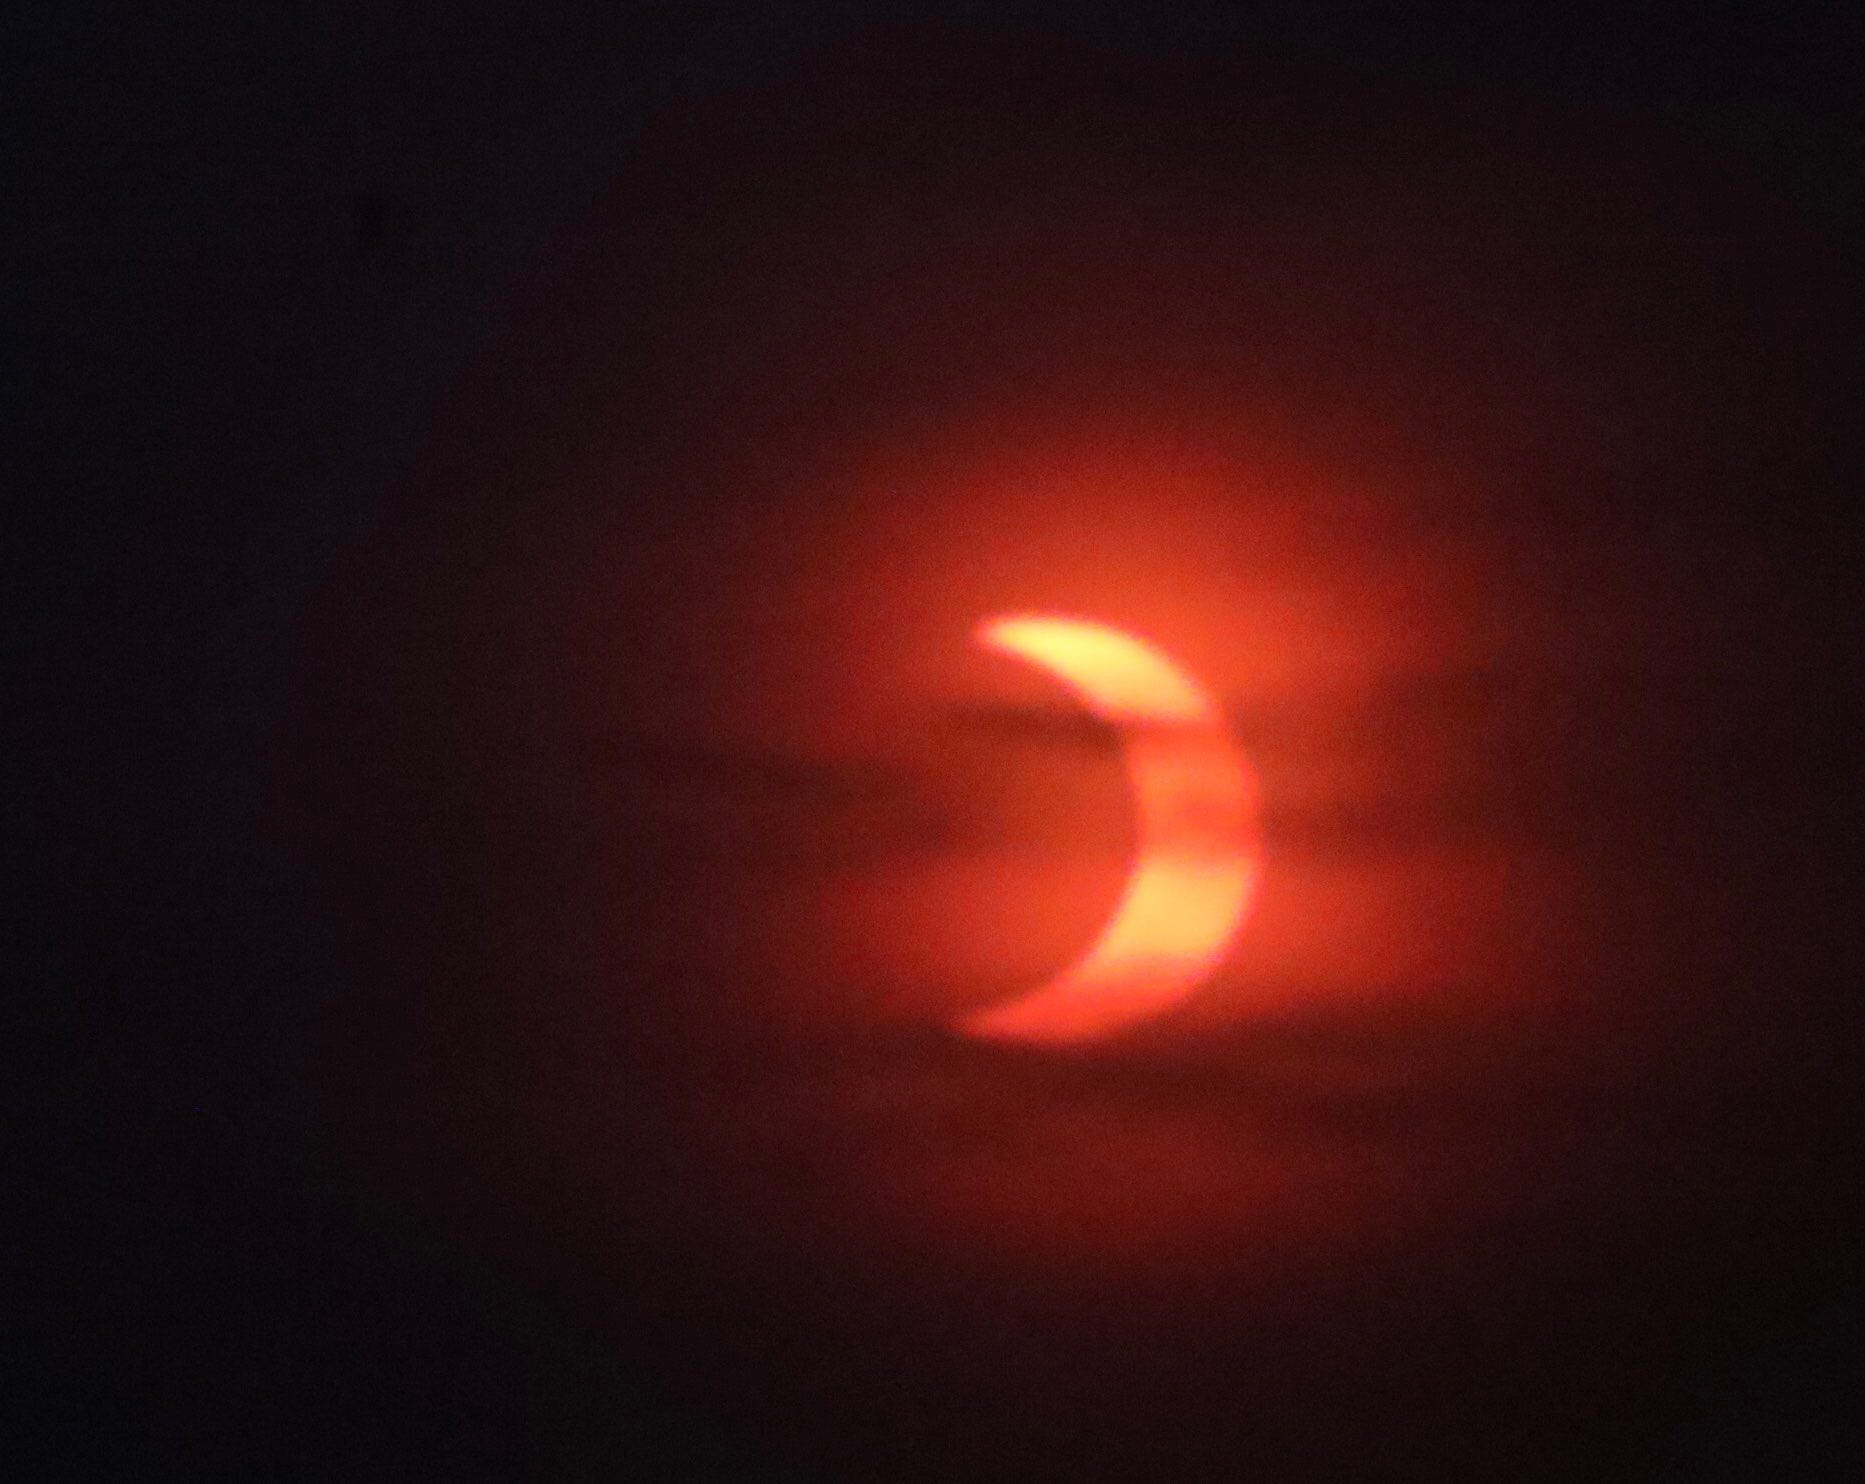 Solar Eclipse 2021: A 'Ring of Fire' Thursday morning